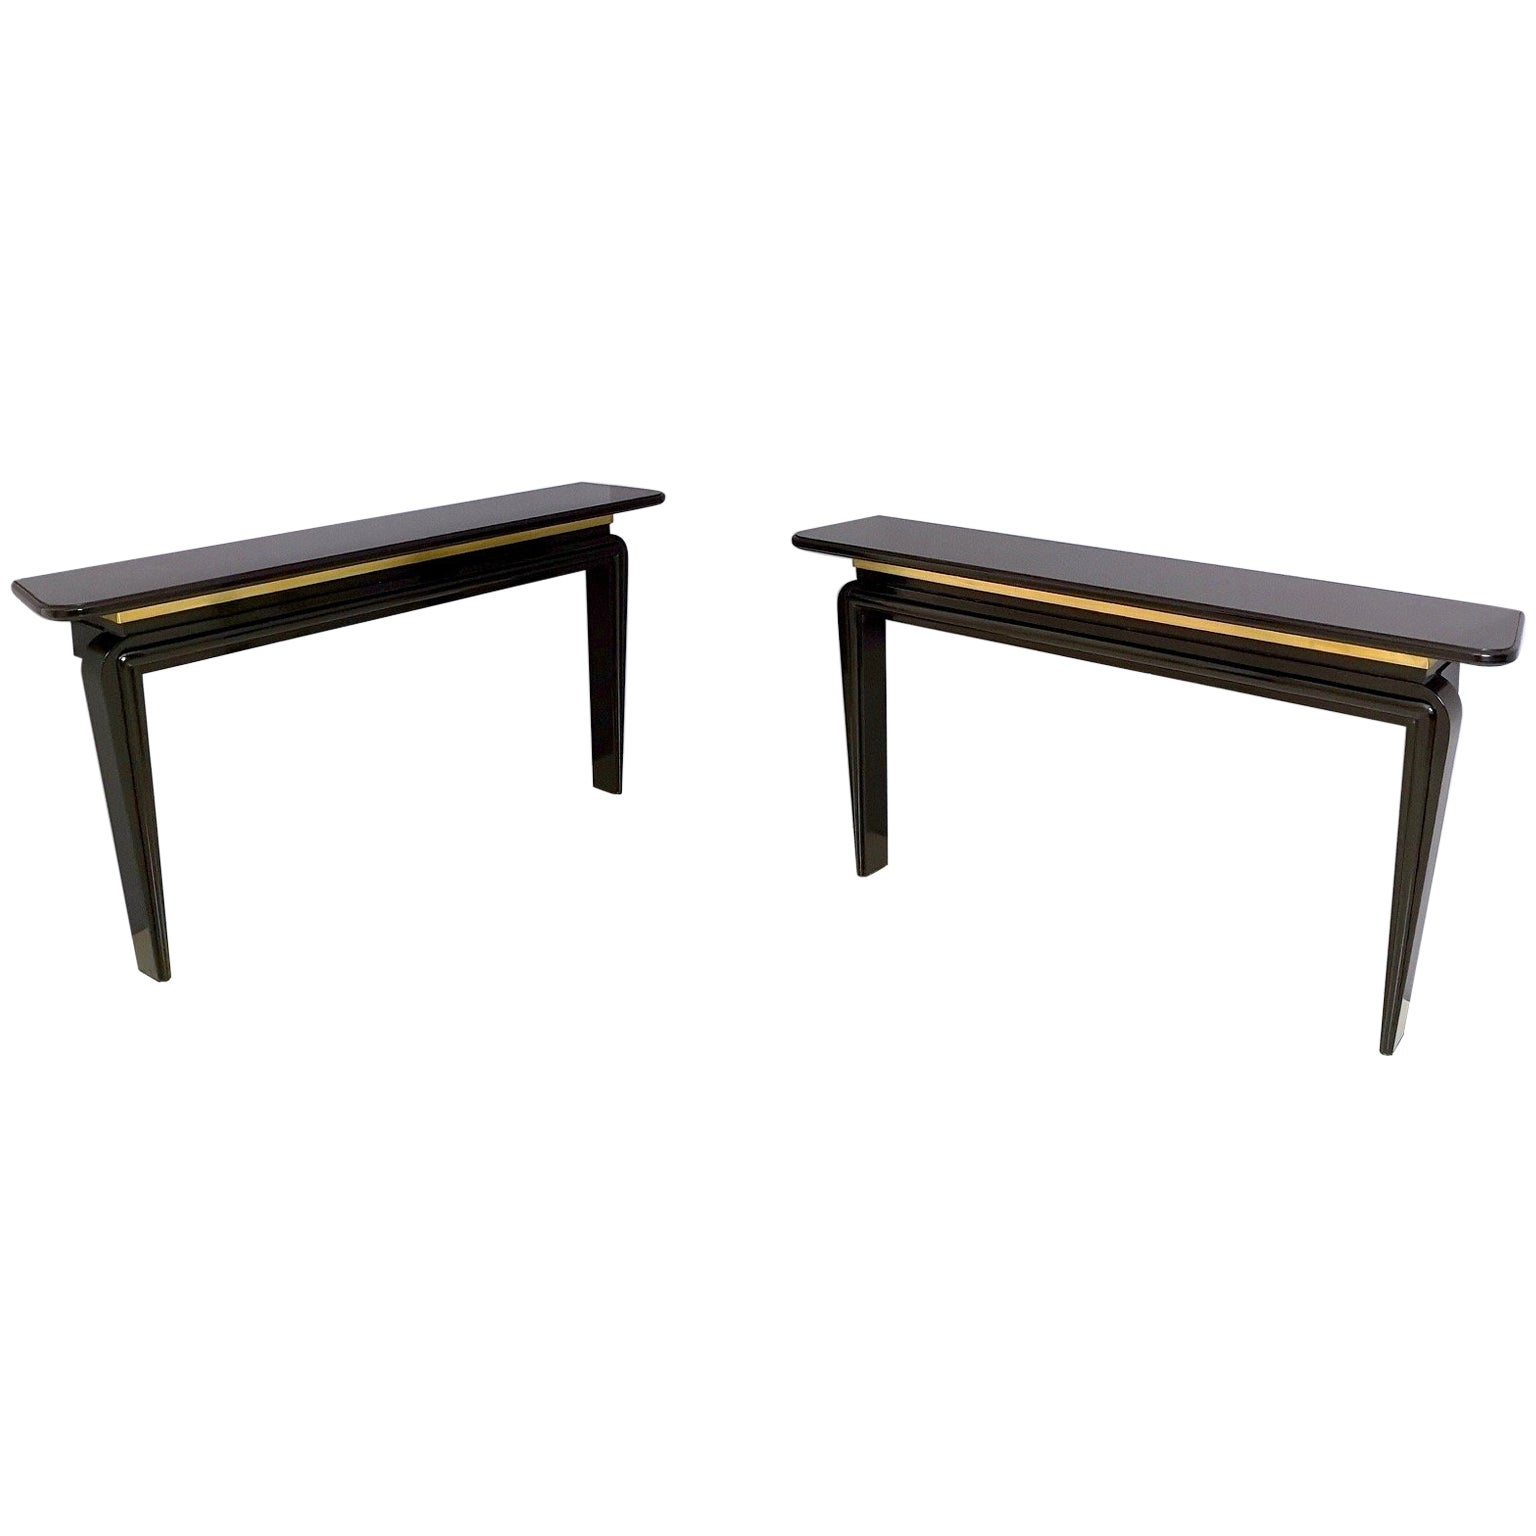 Pair of Black Lacquered Wood and Brass Console Tables, Italy, 1980s